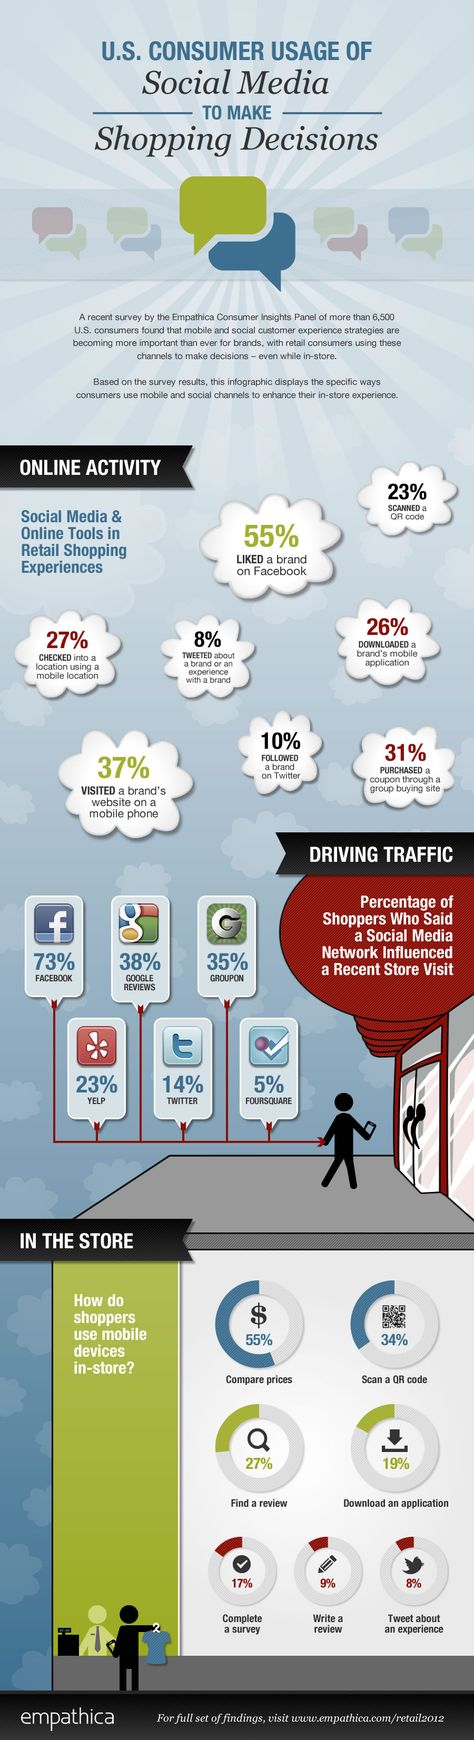 What do consumers want from your business on social media? Here is how they're using social in the buying cycle...http://www.empathica.com/infographic-us-consumer-usage-of-social-media-to-make-shopping-decisions/)